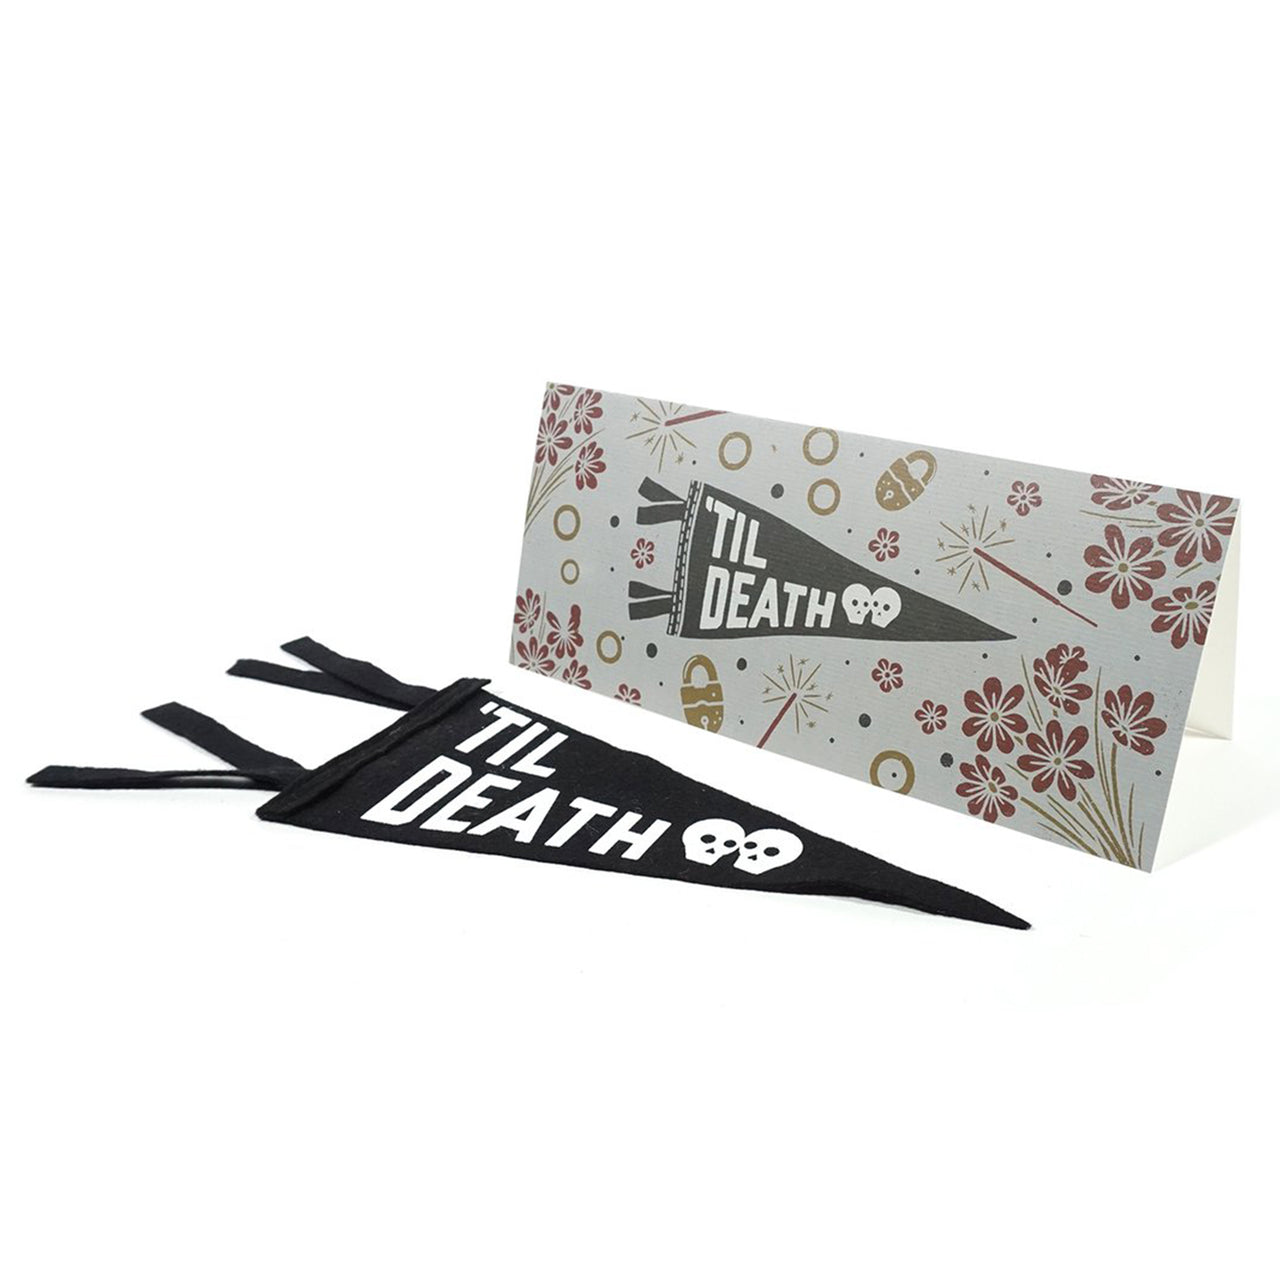 'Til Death' Greeting card & Mini Pennant